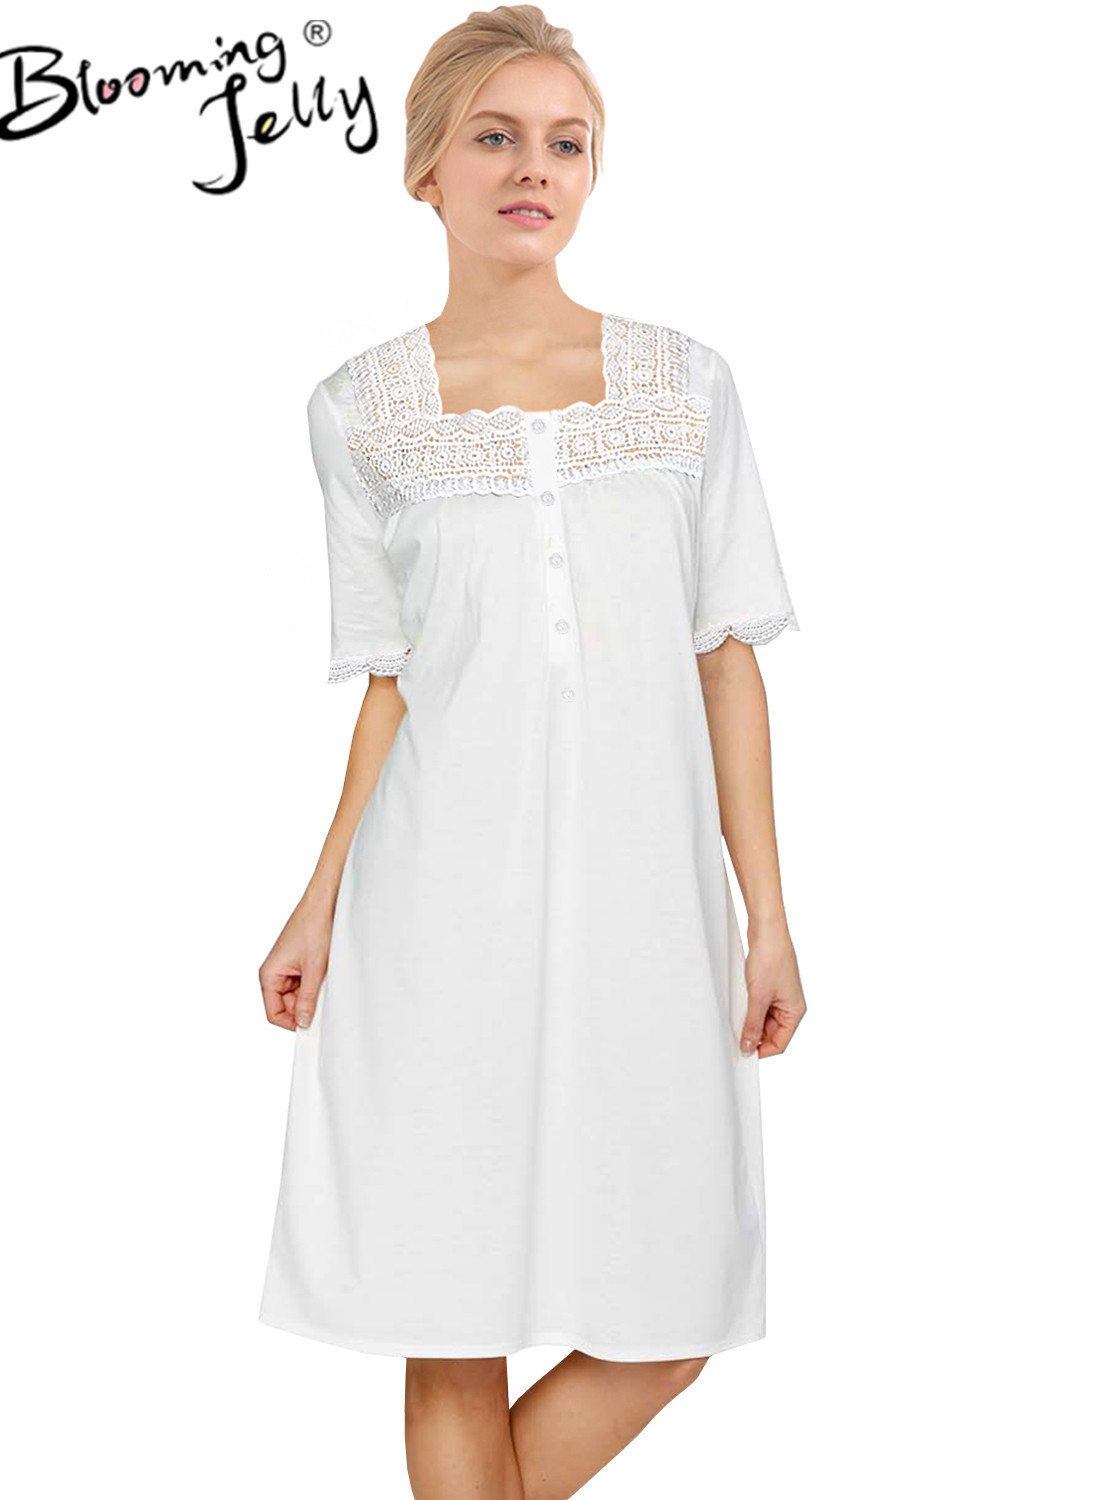 Blooming Jelly New Victorian Style Homewear Women Short Sleeve Square Collar Summer Nightdress Lace Patchwork Princess Sleepwear